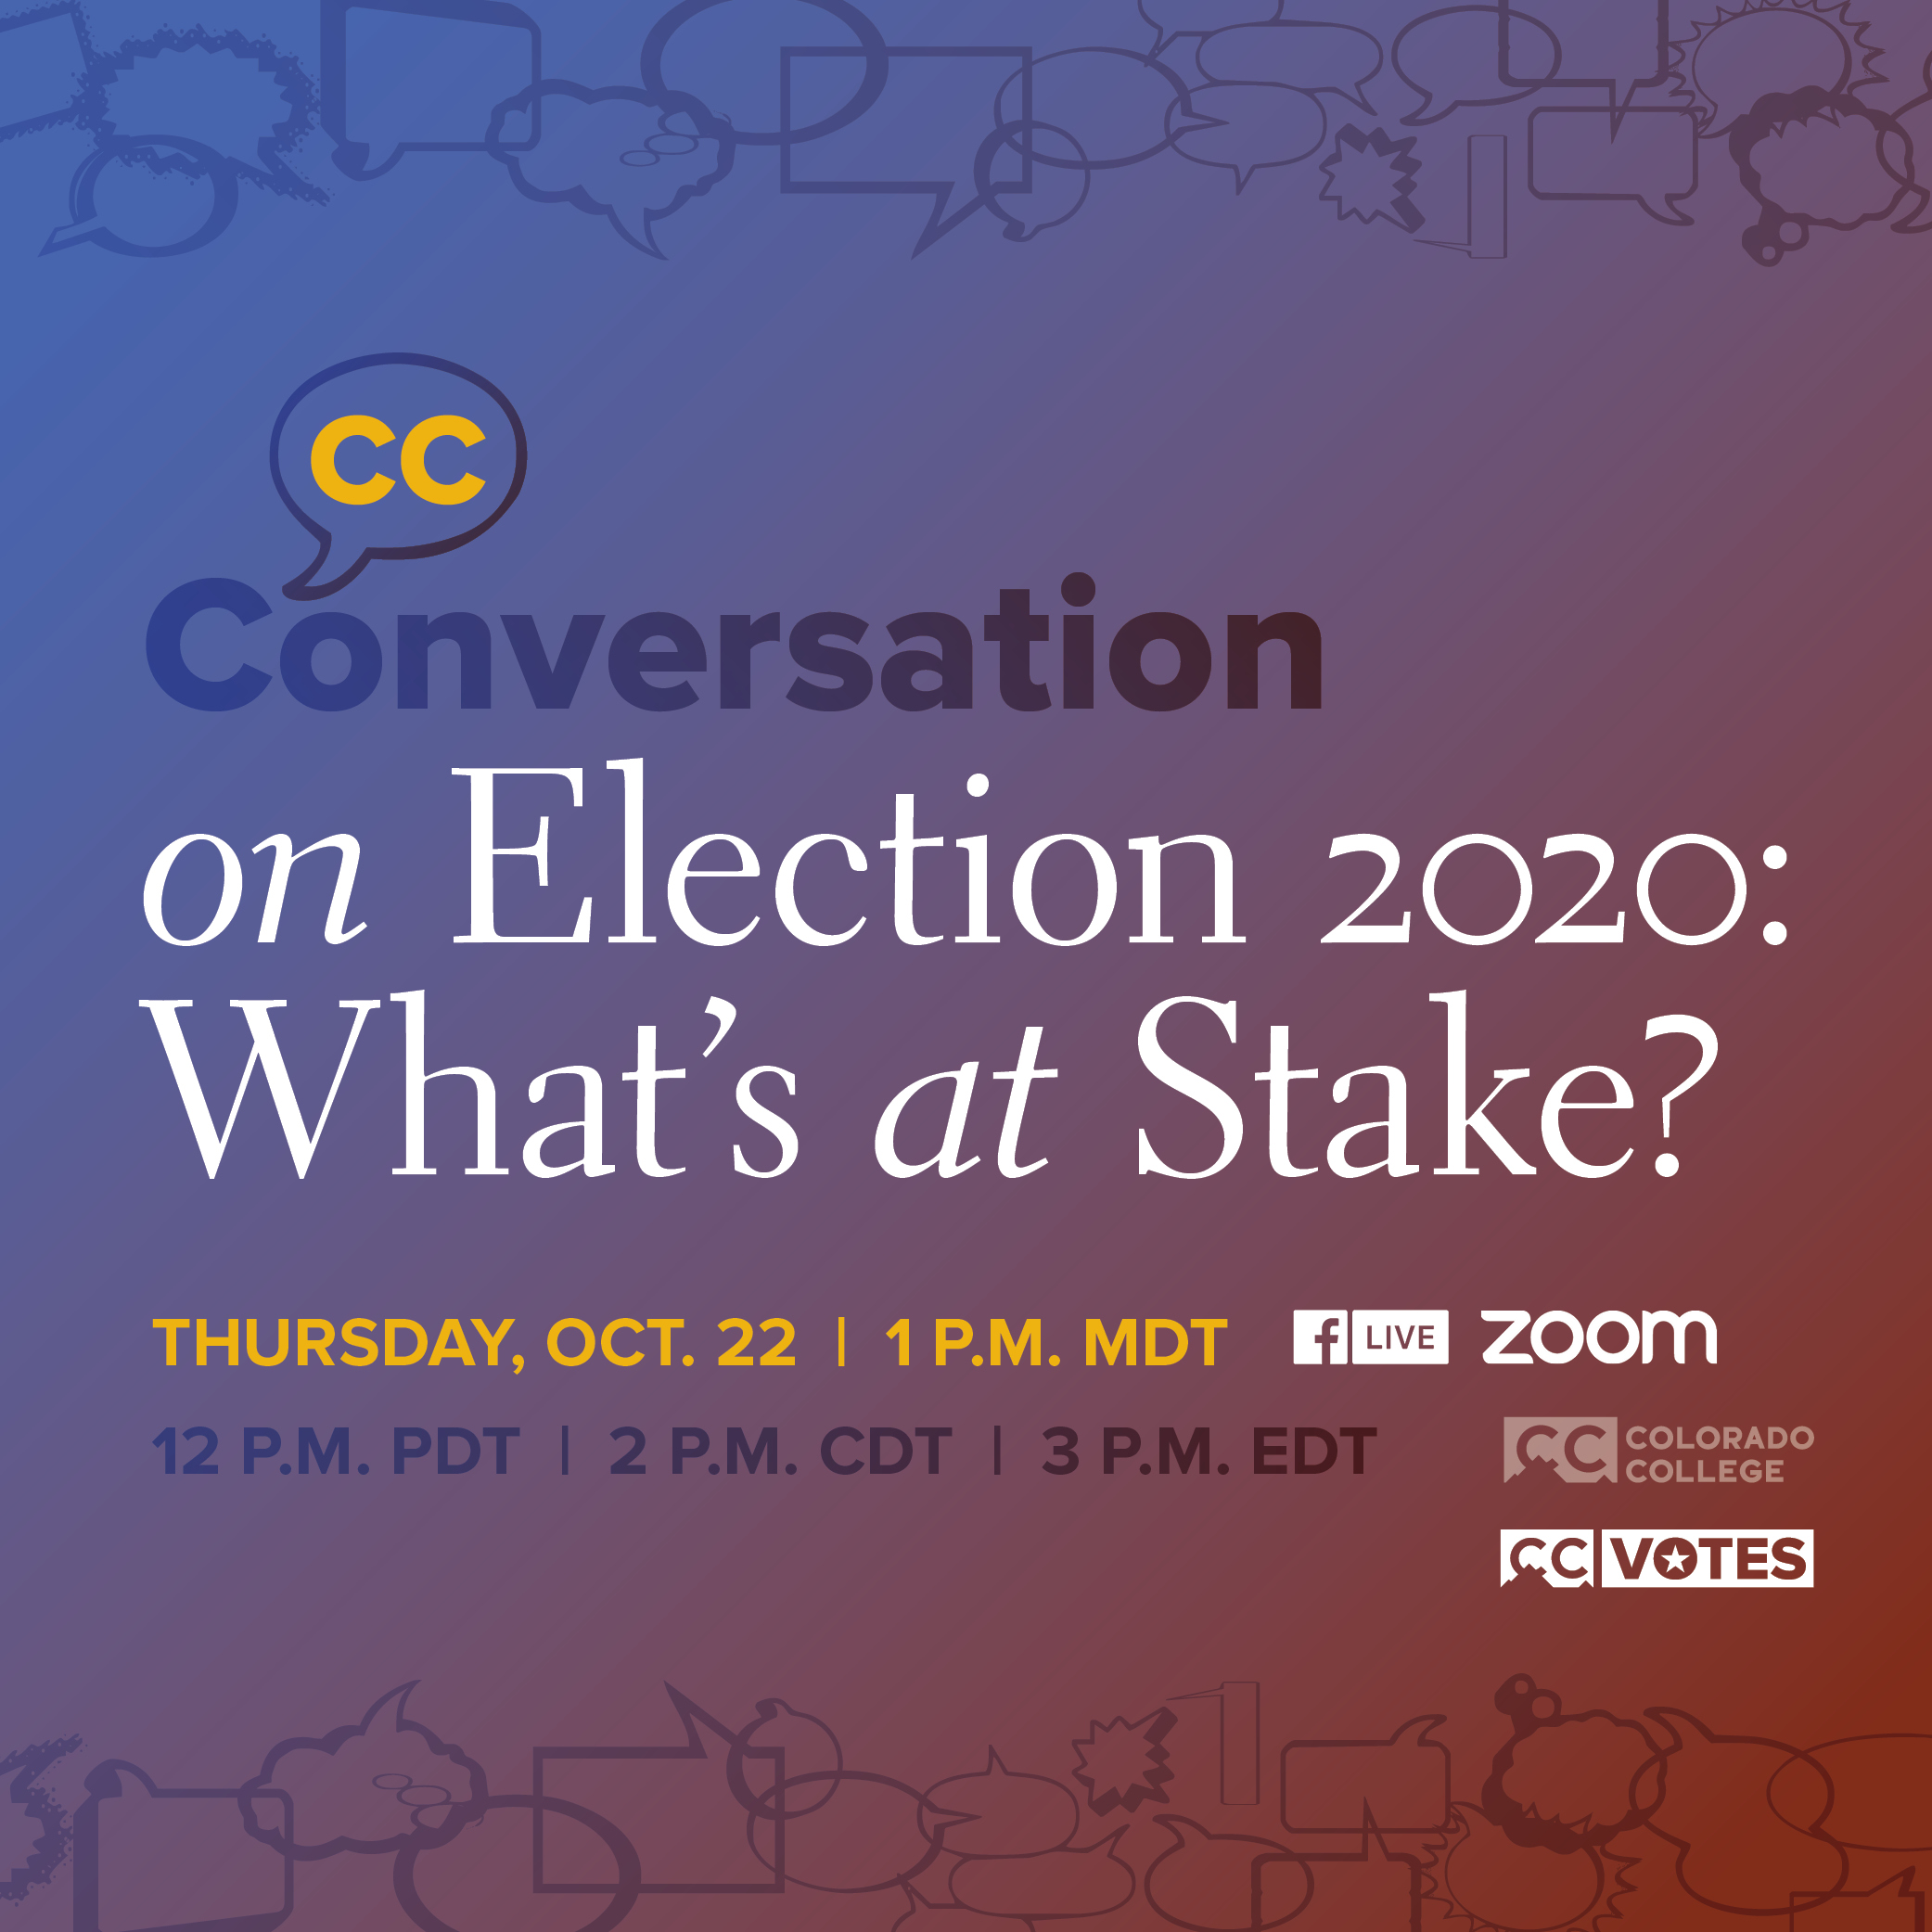 Next CC Conversation: Election 2020: What's at Stake?